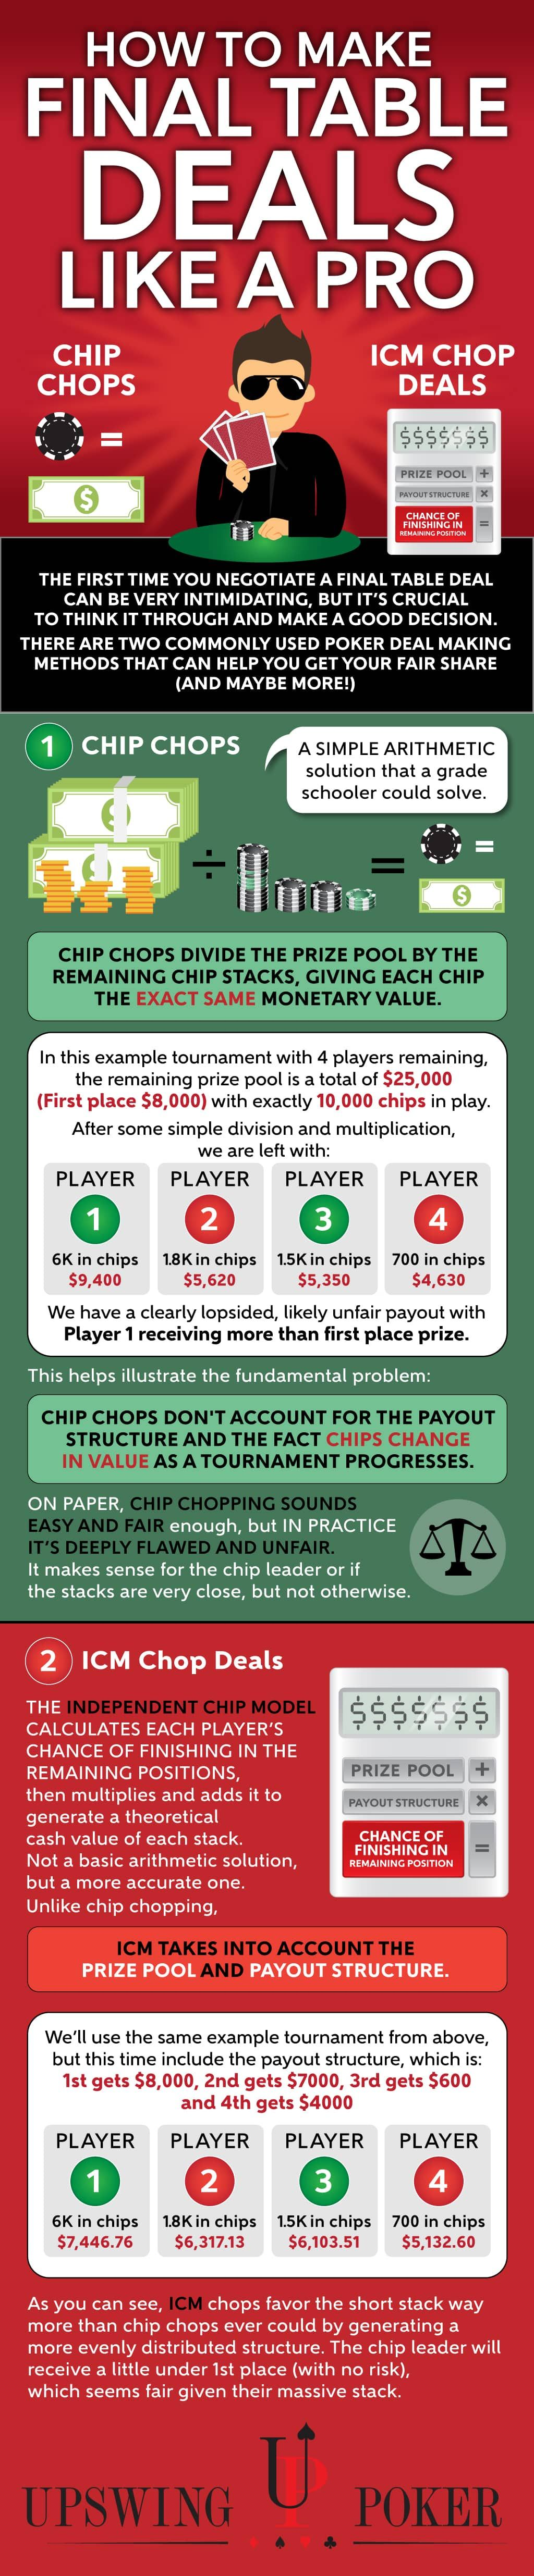 How to Negotiate Final Table Deals Like a Pro Upswing Poker - How to Negotiate Final Table Deals Like a Pro - Upswing Poker